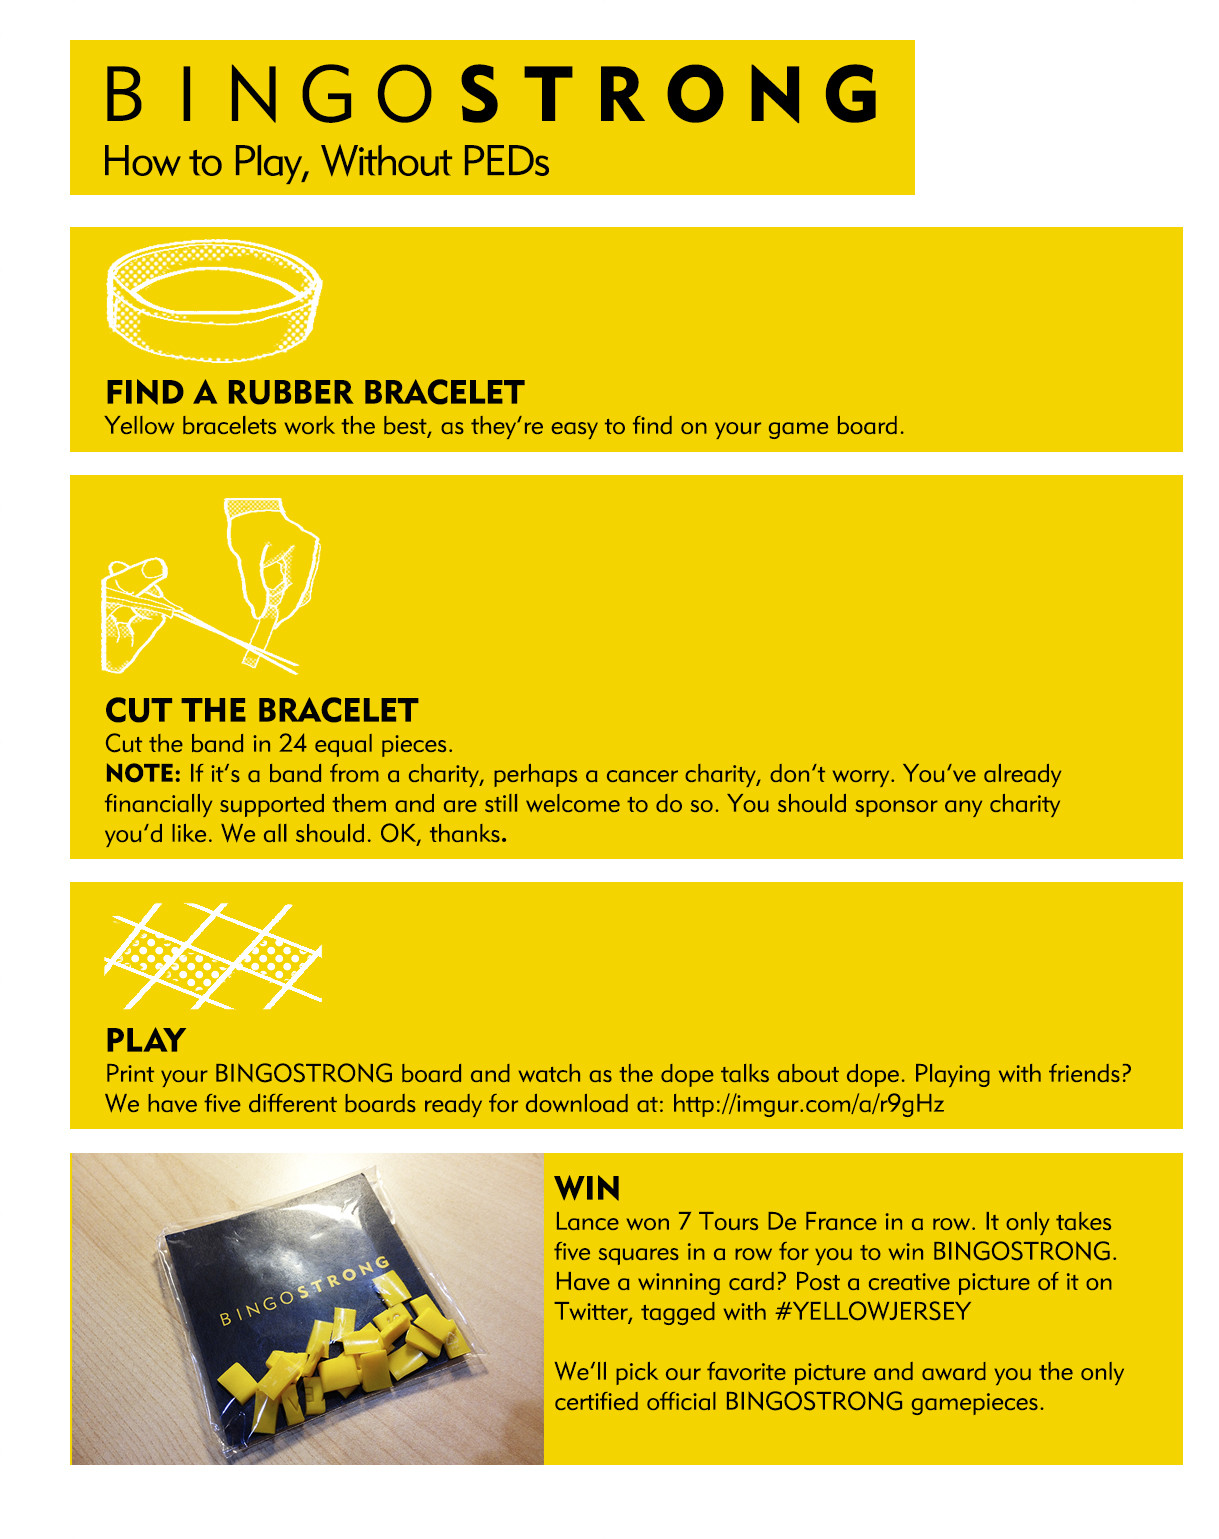 BingoStrong game rules, a handy guide for making your game pieces, and a grand prize